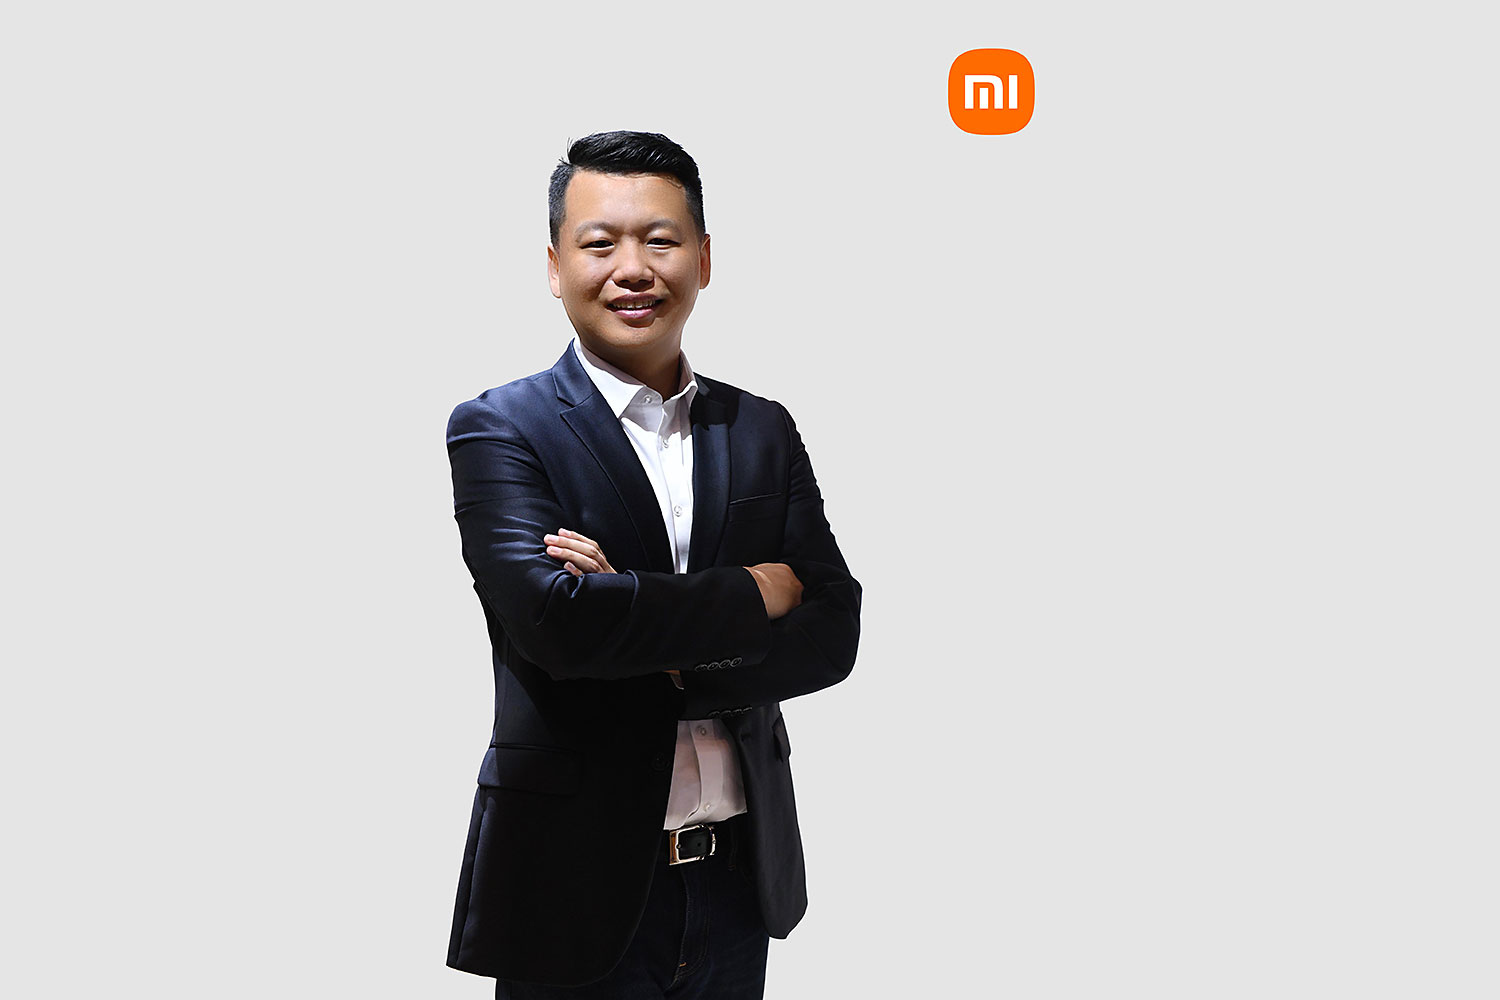 Mr Kang says the marketing budget for Xiaomi Thailand is rising 100%.